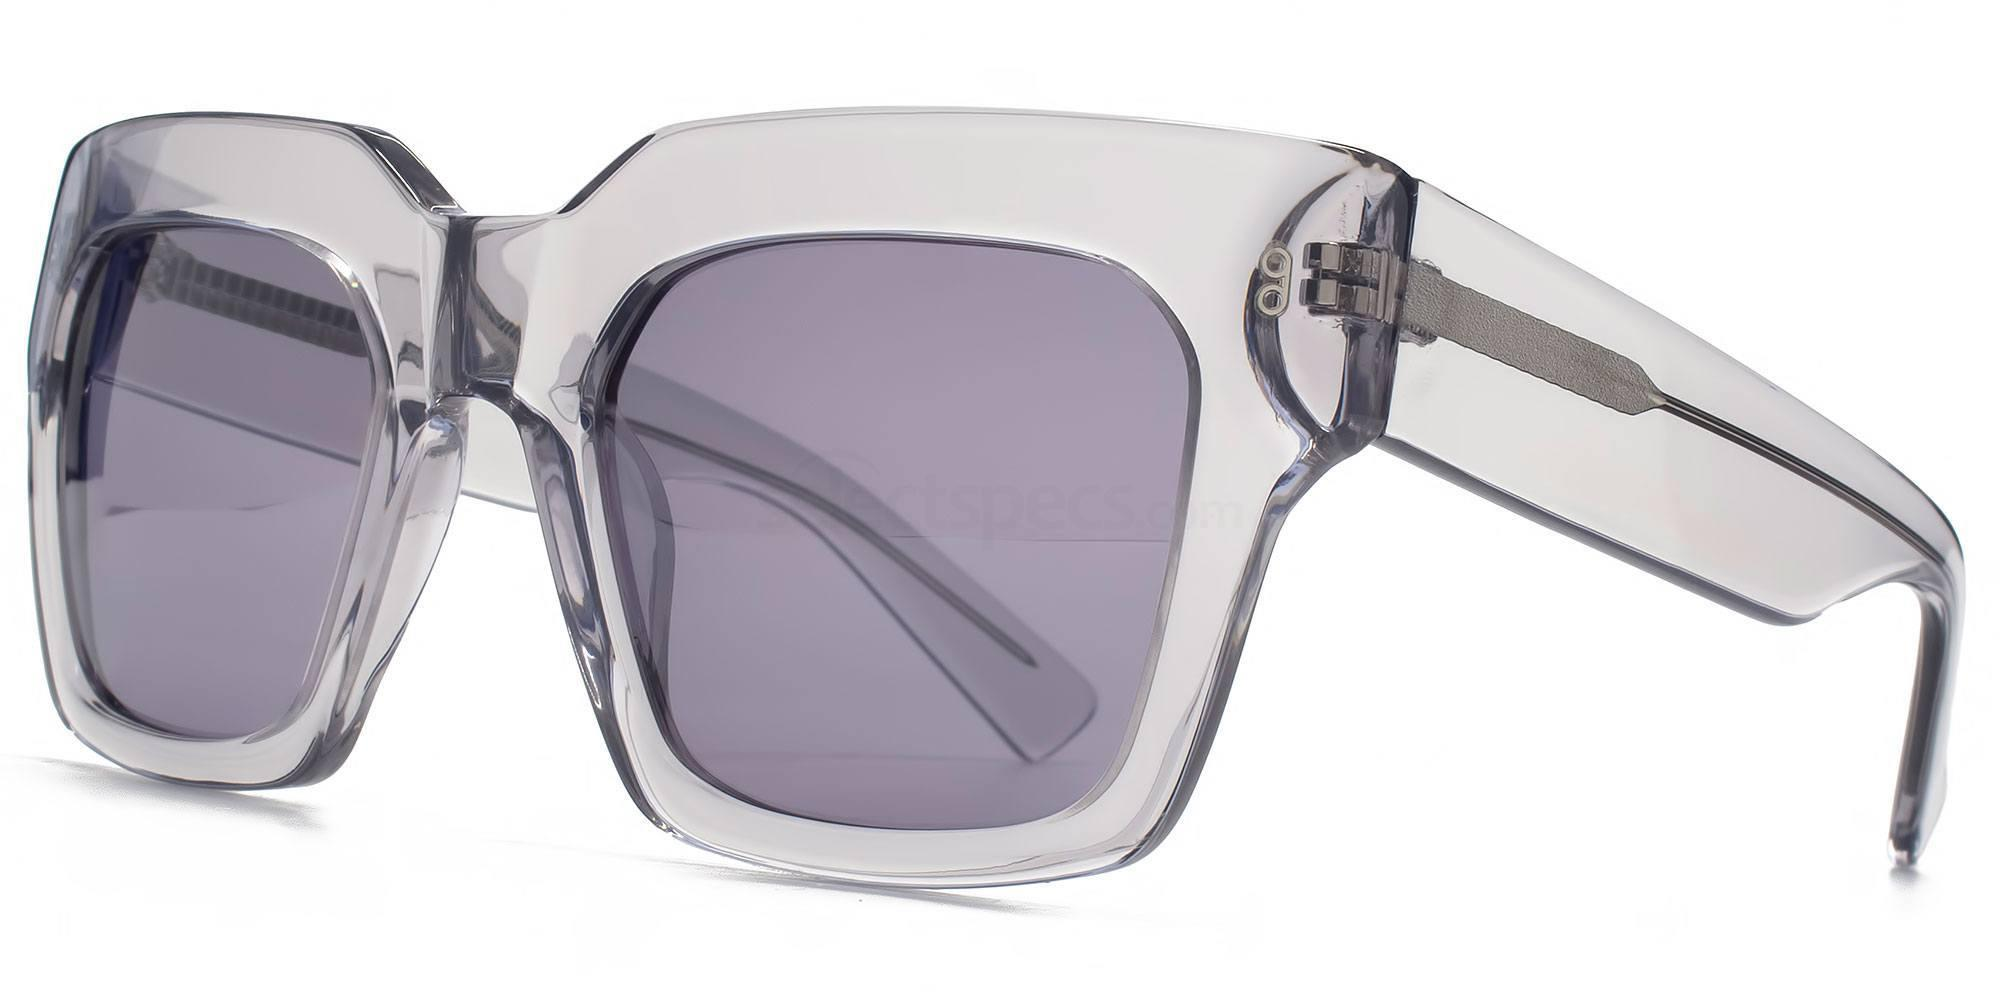 Hook LDN HK009 - GENESIS sunglasses